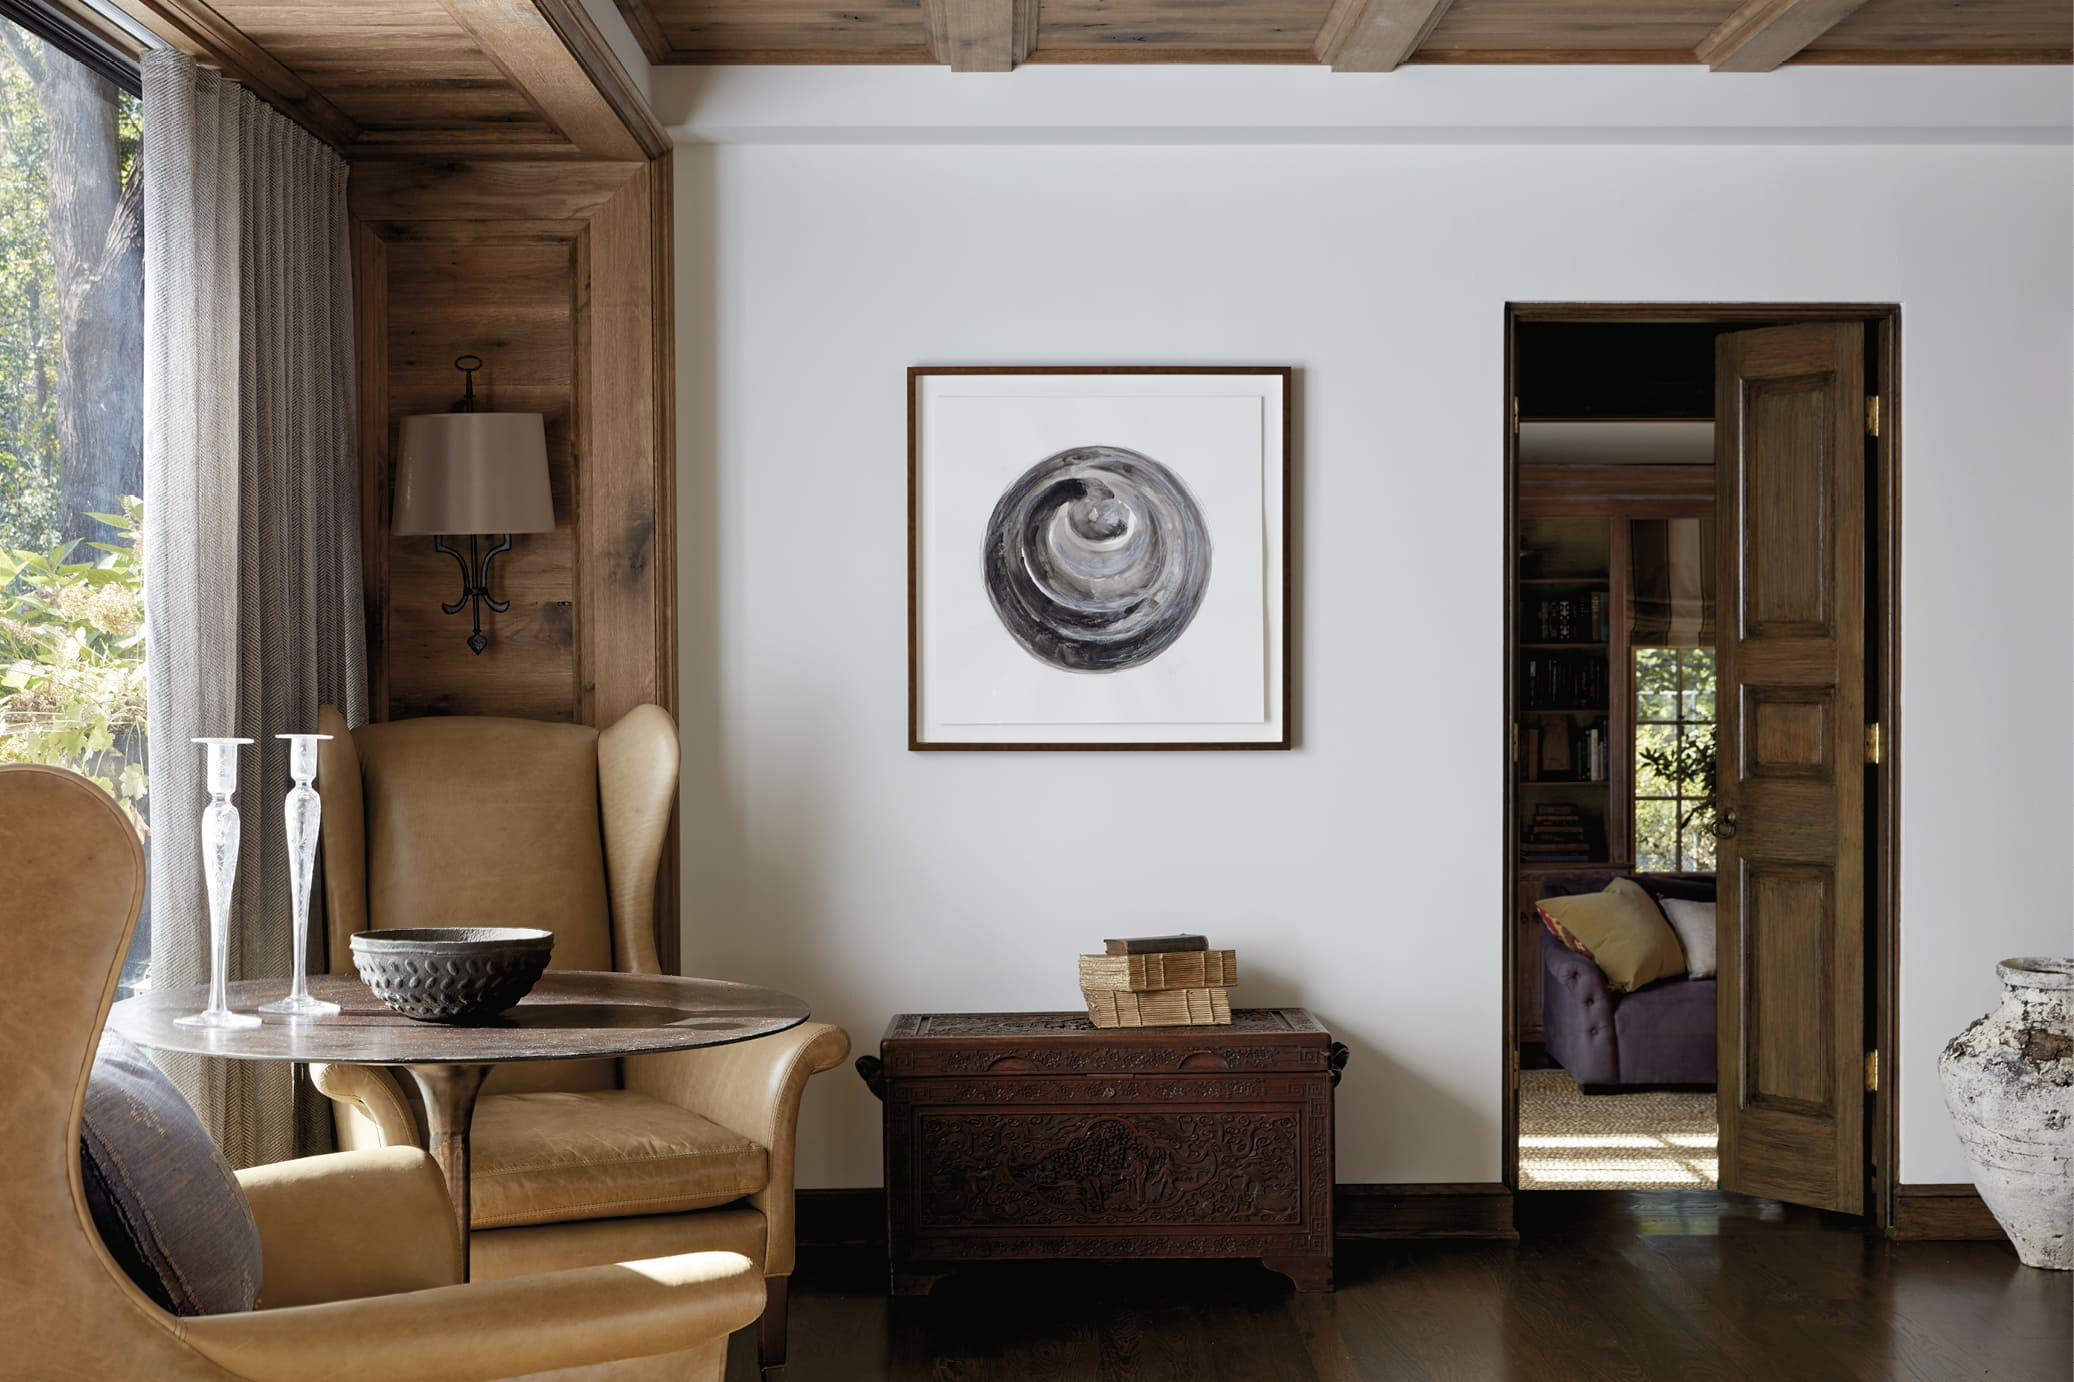 Sitting area with an abstract painting on the wall